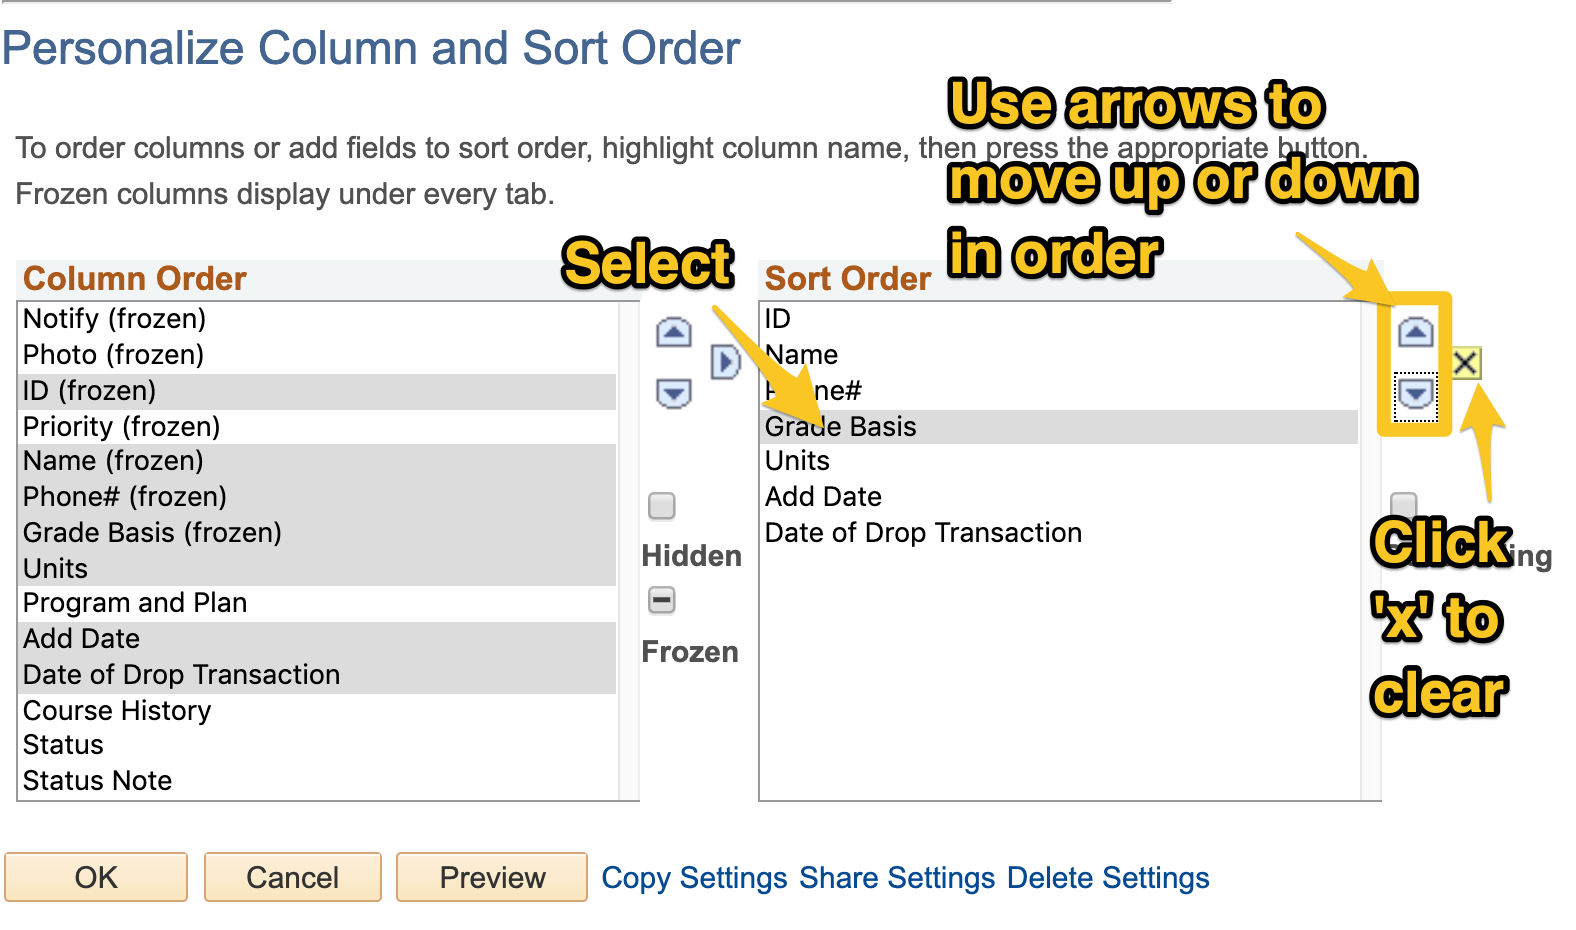 Once columns appear in the Sort Order table, use the up and down arrows to the right of the table to reorder the columns.